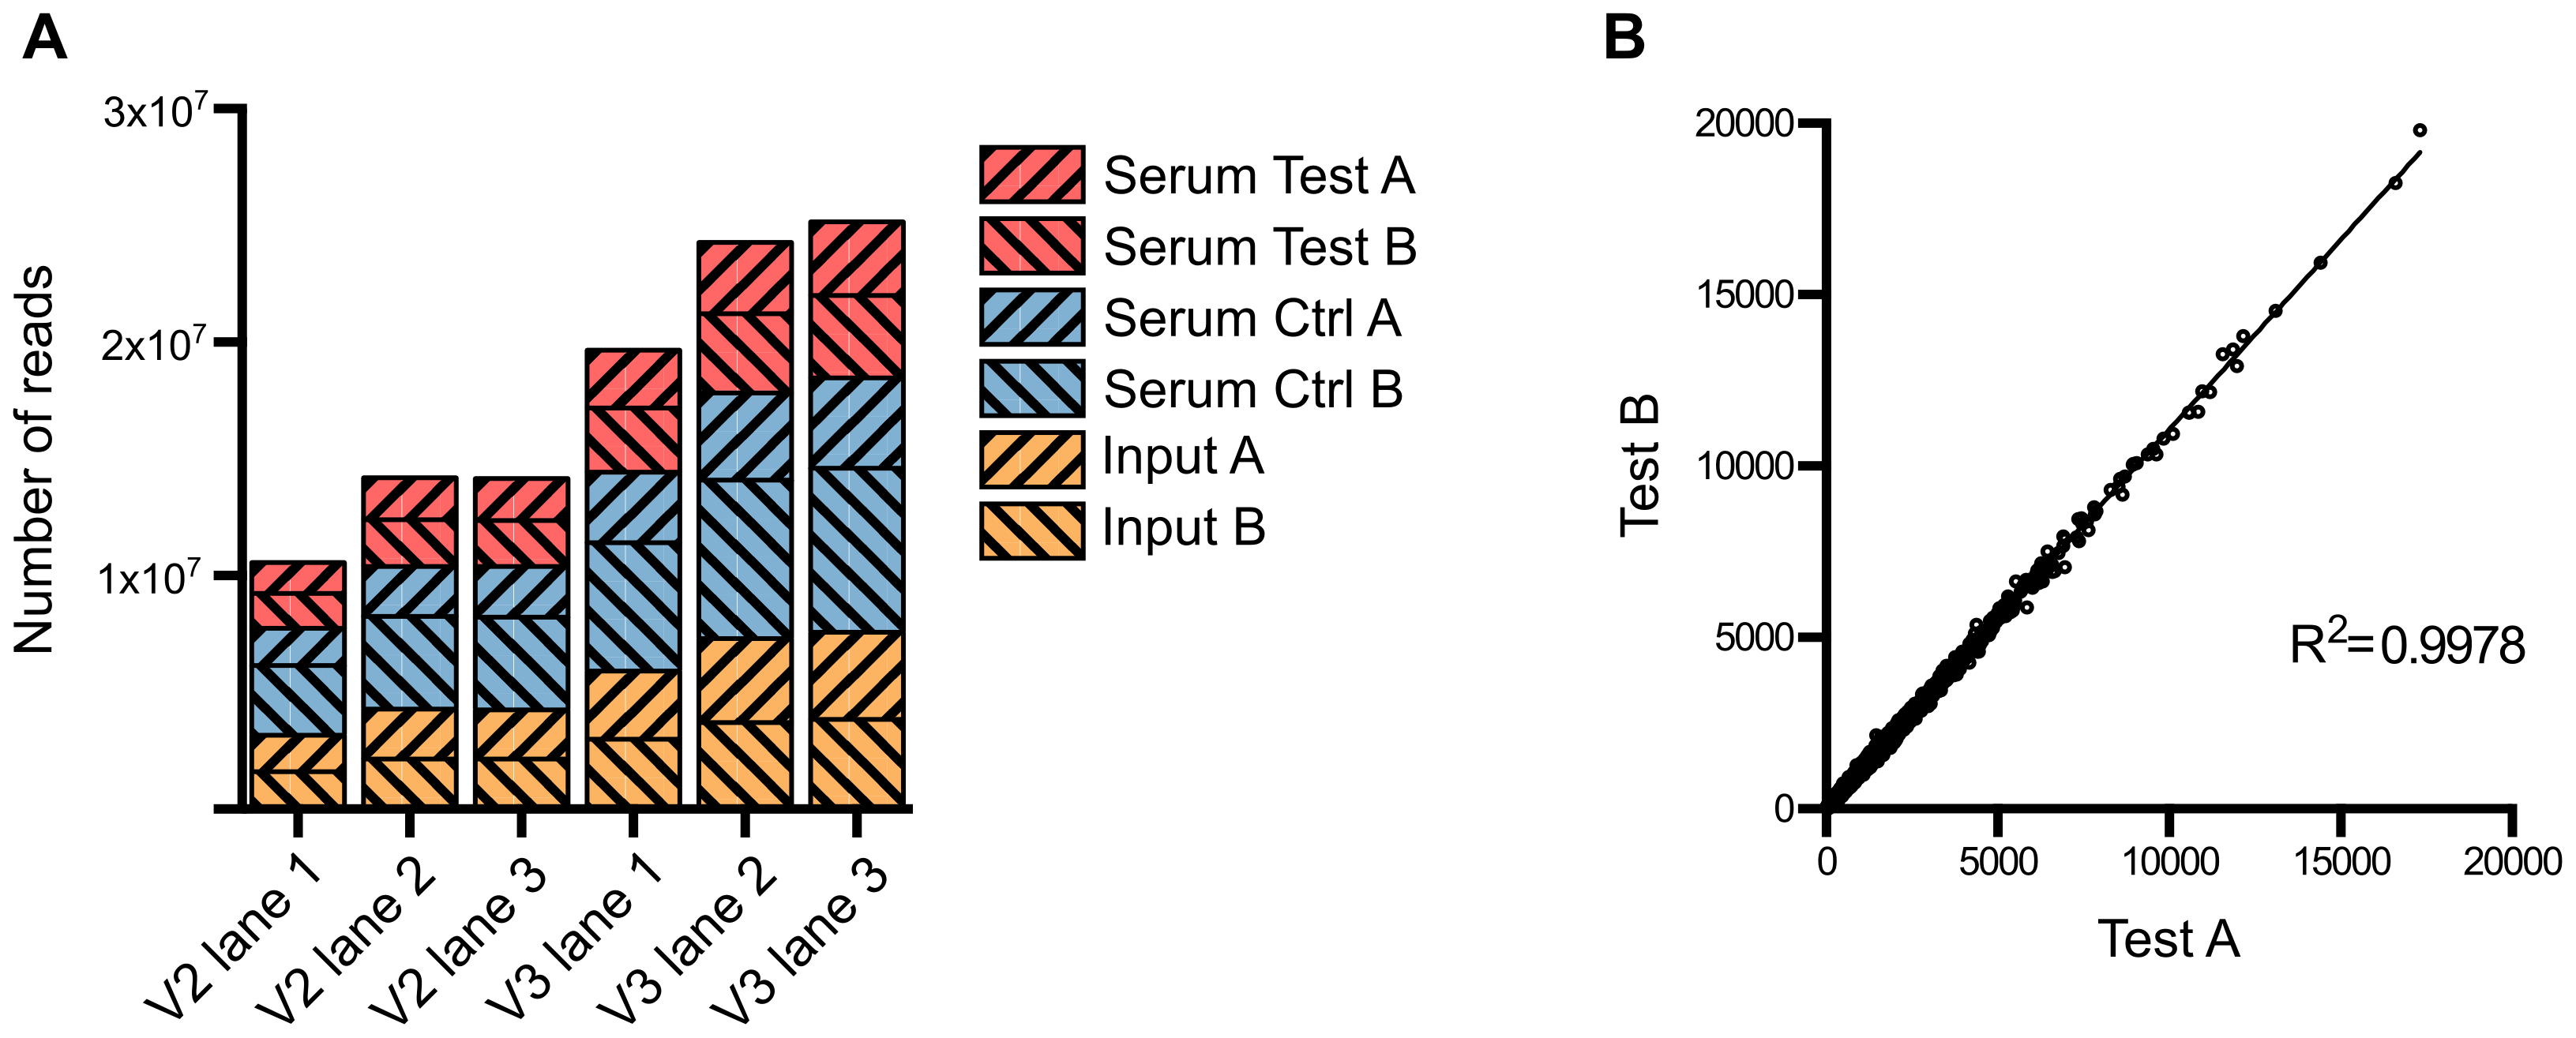 Summary of sequence read data from multiplexed TraDIS.